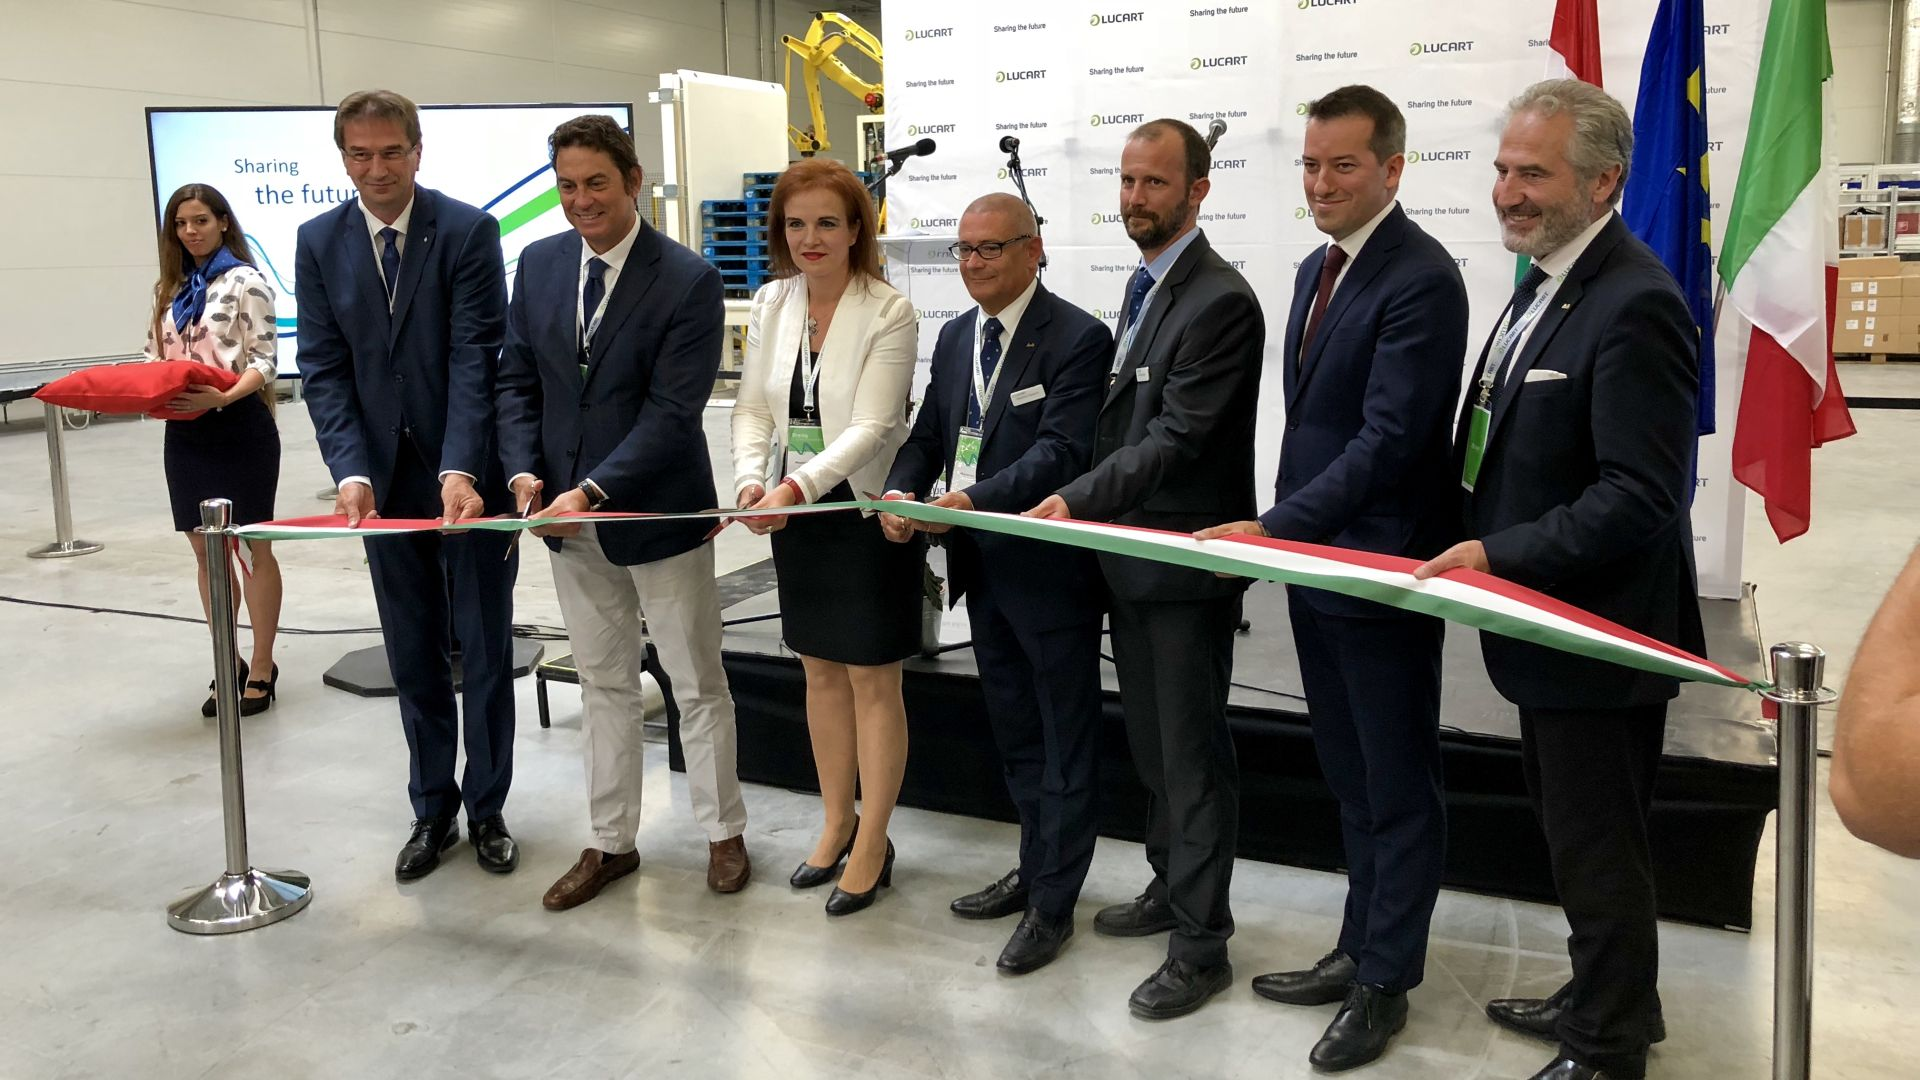 Lucart celebrates the inauguration of its new plant in Nyergesújfalu